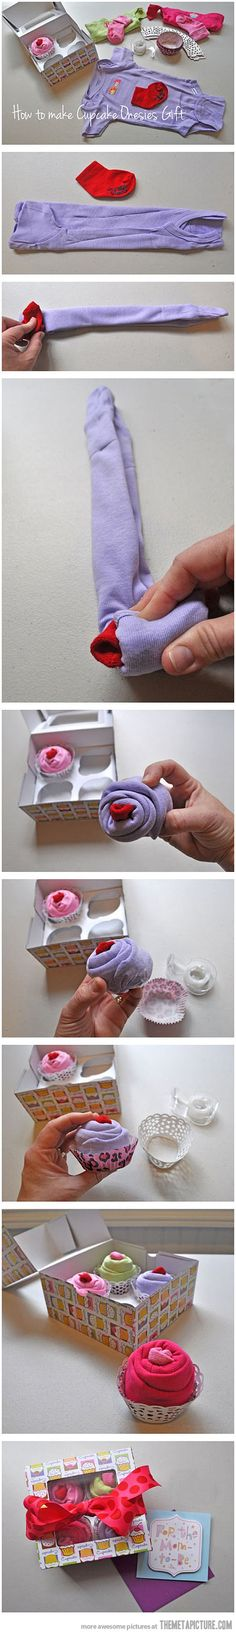 The best way to gift baby clothes…